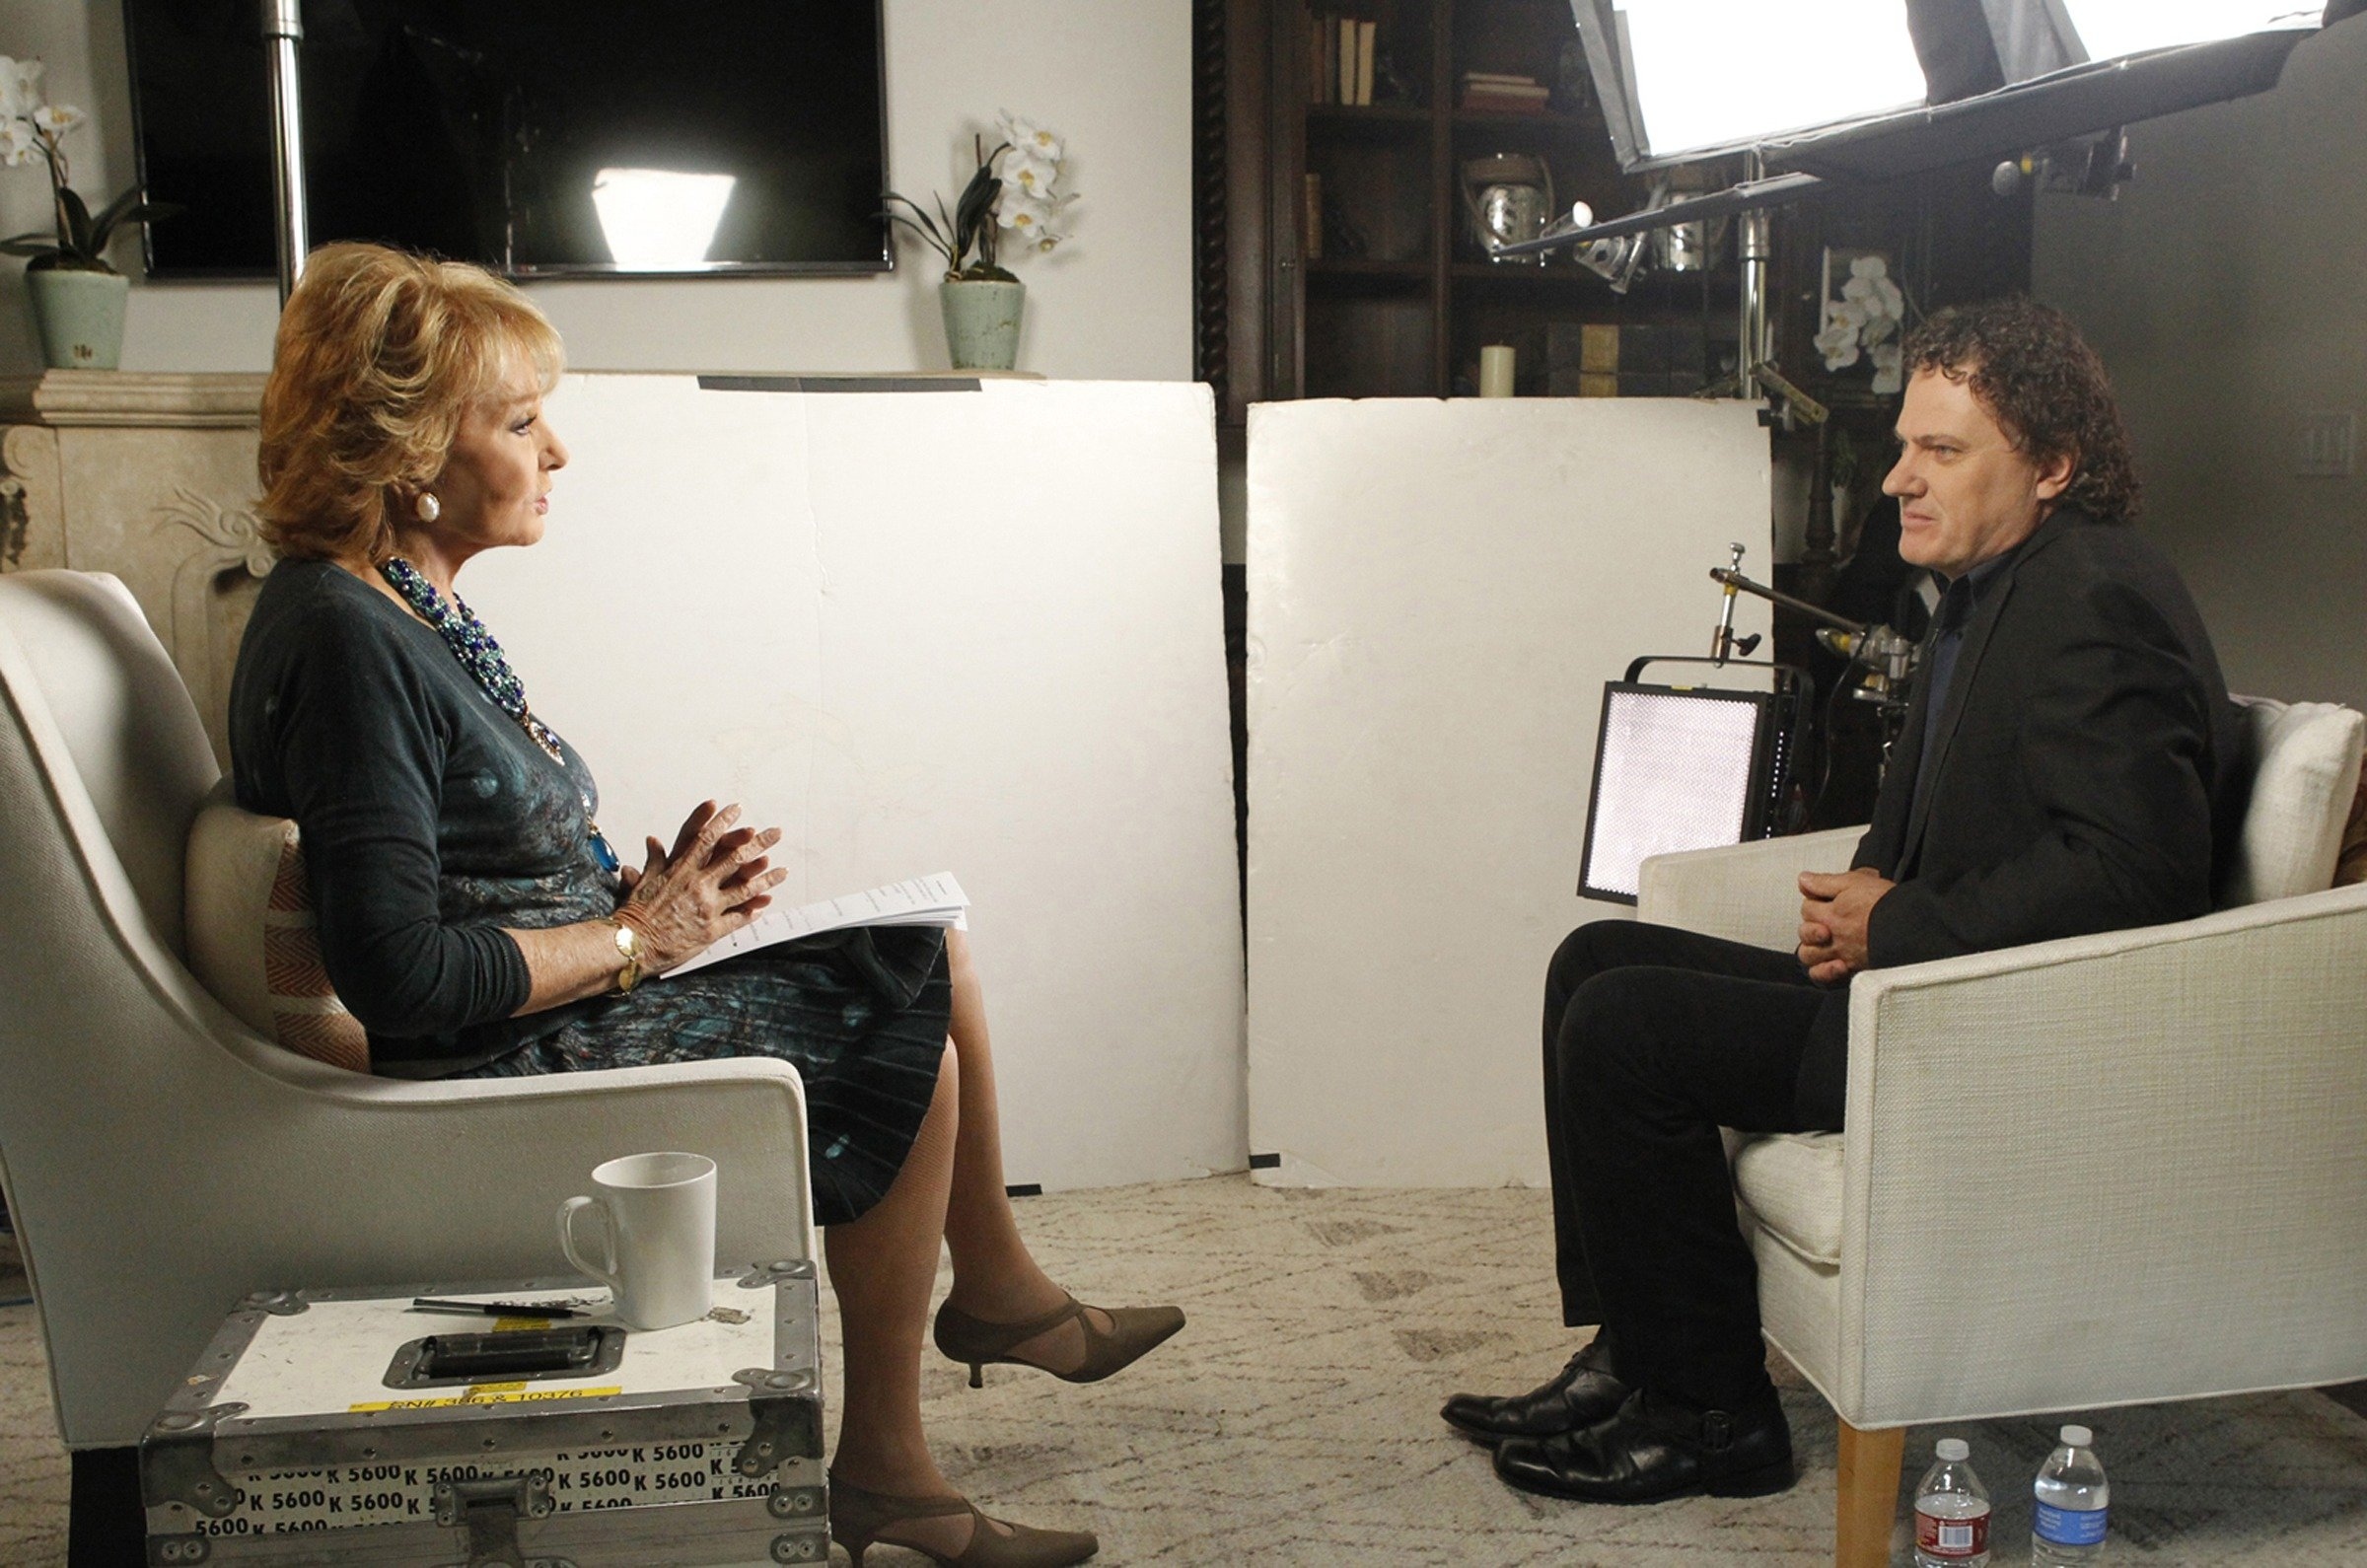 Barbara Walters is shown interviewing Peter Rodger, the father of Isla Vista shooter Elliot Rodger, June 26, 2014.